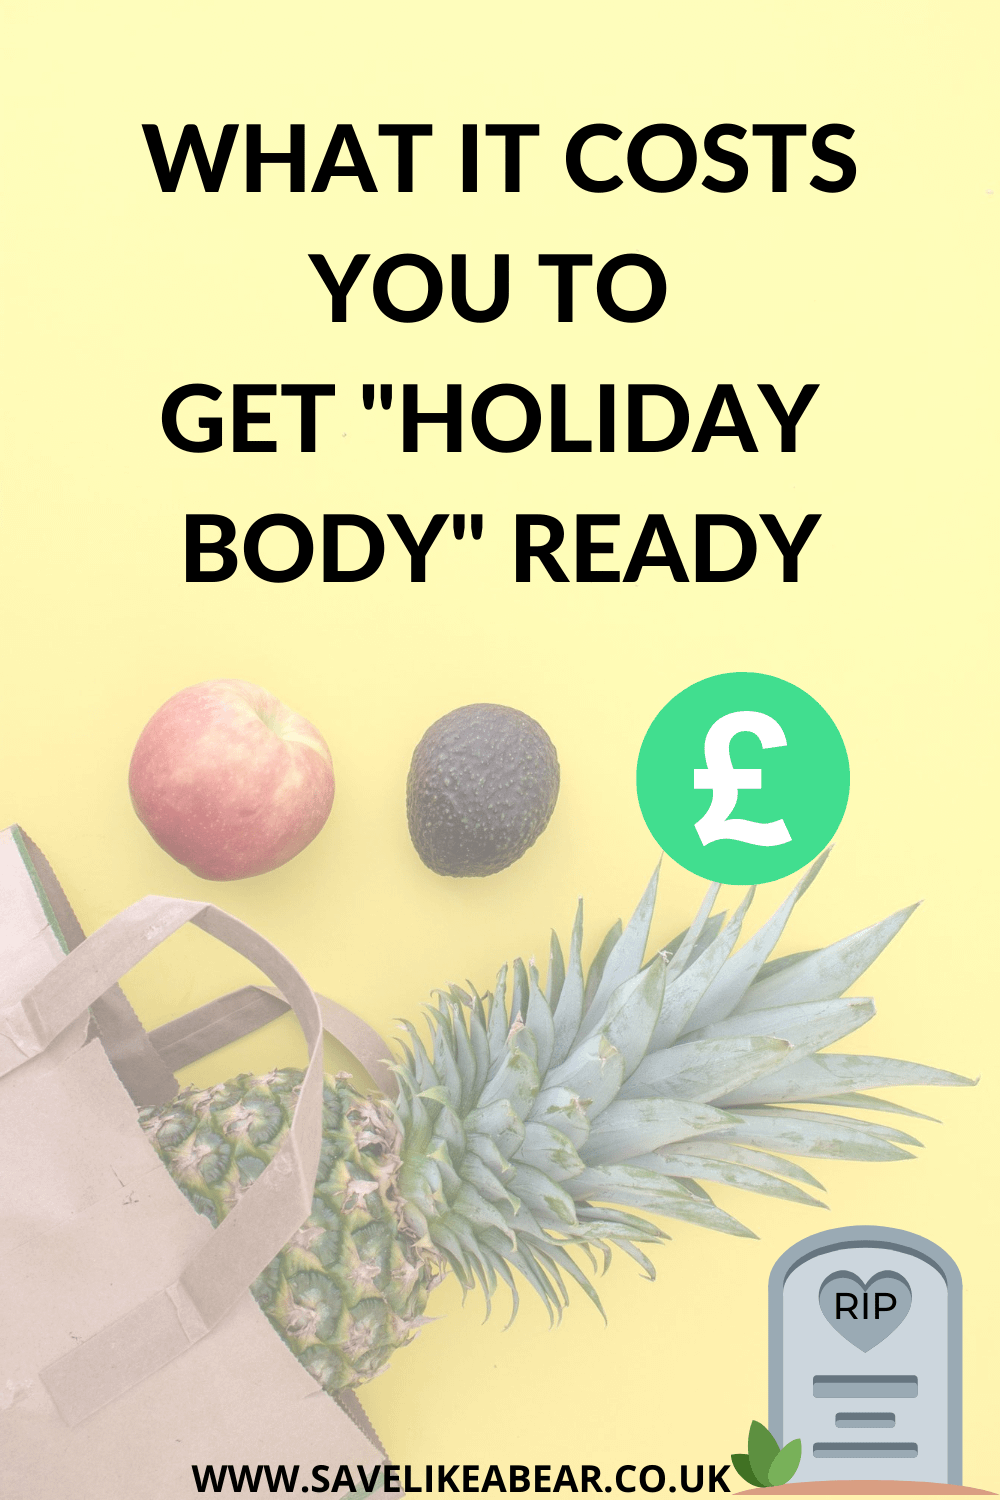 What does it cost you to get holiday body ready